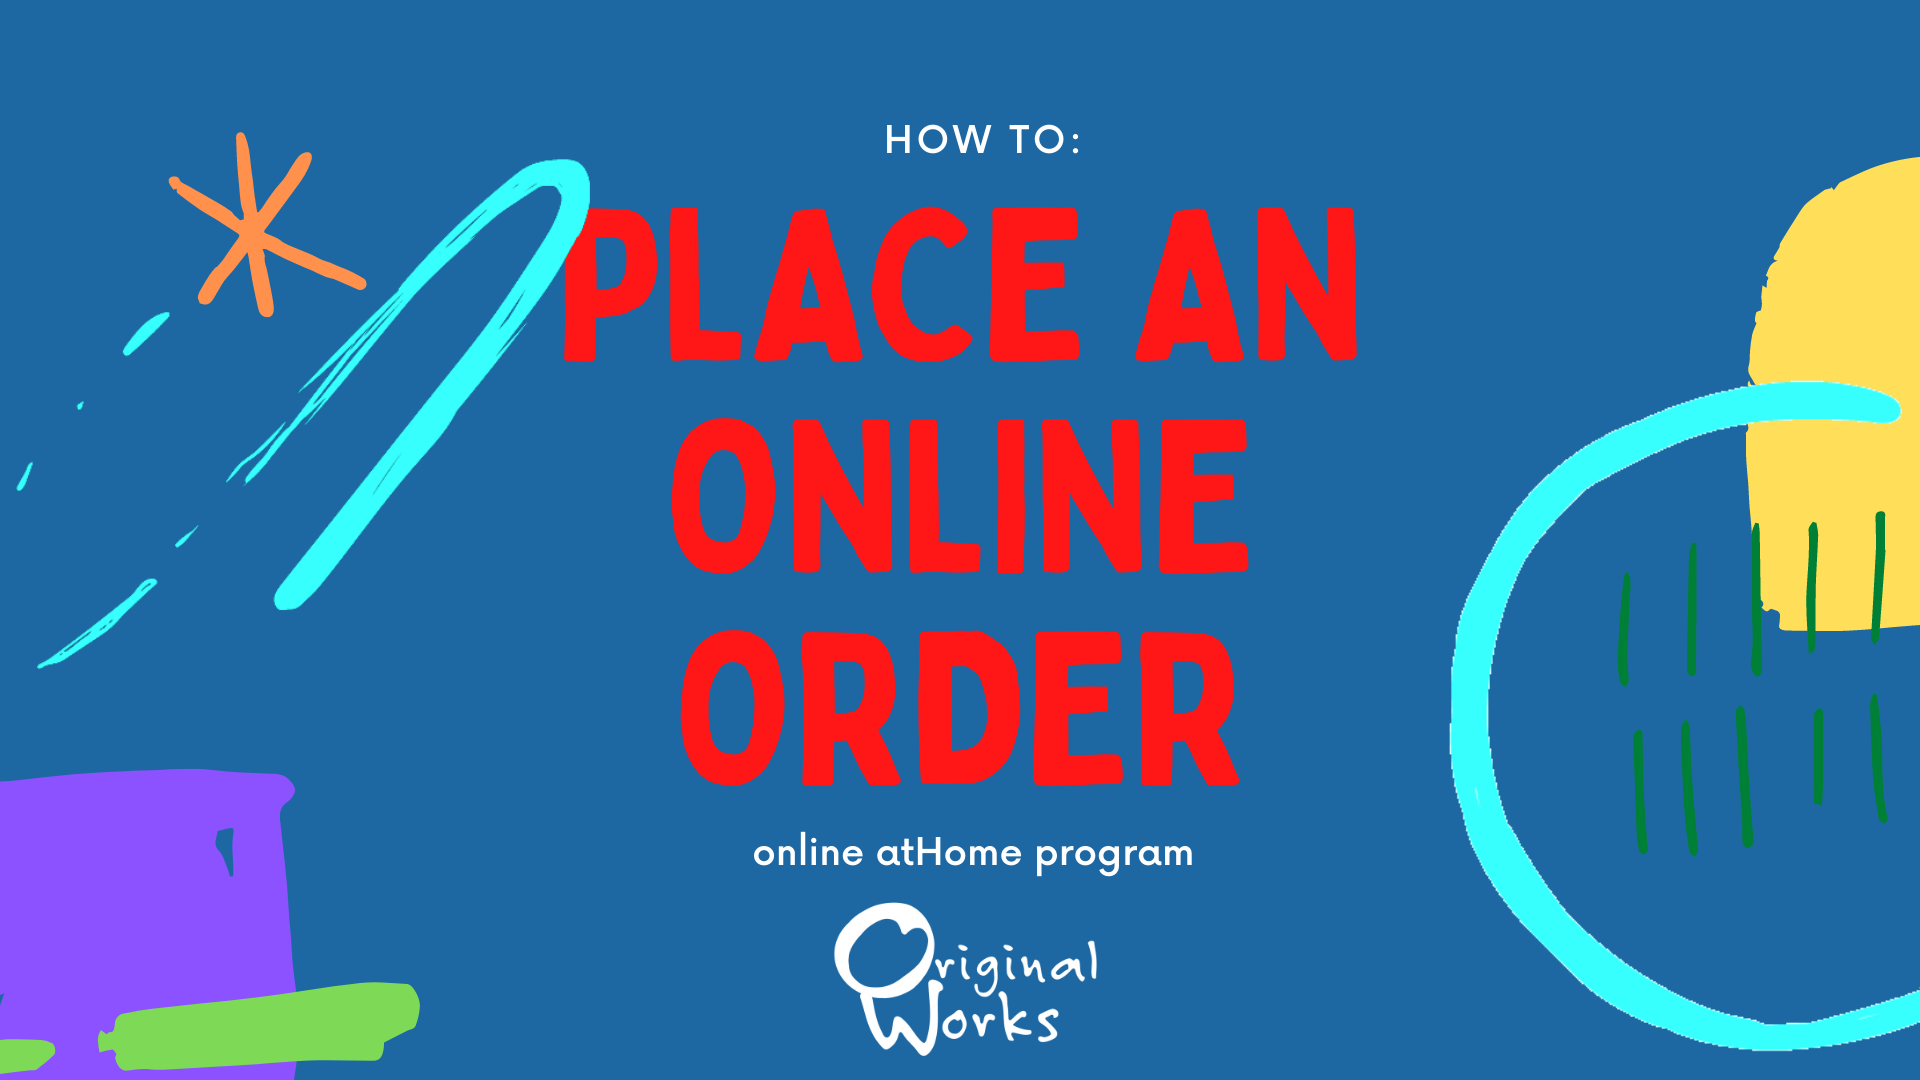 atHome Ordering